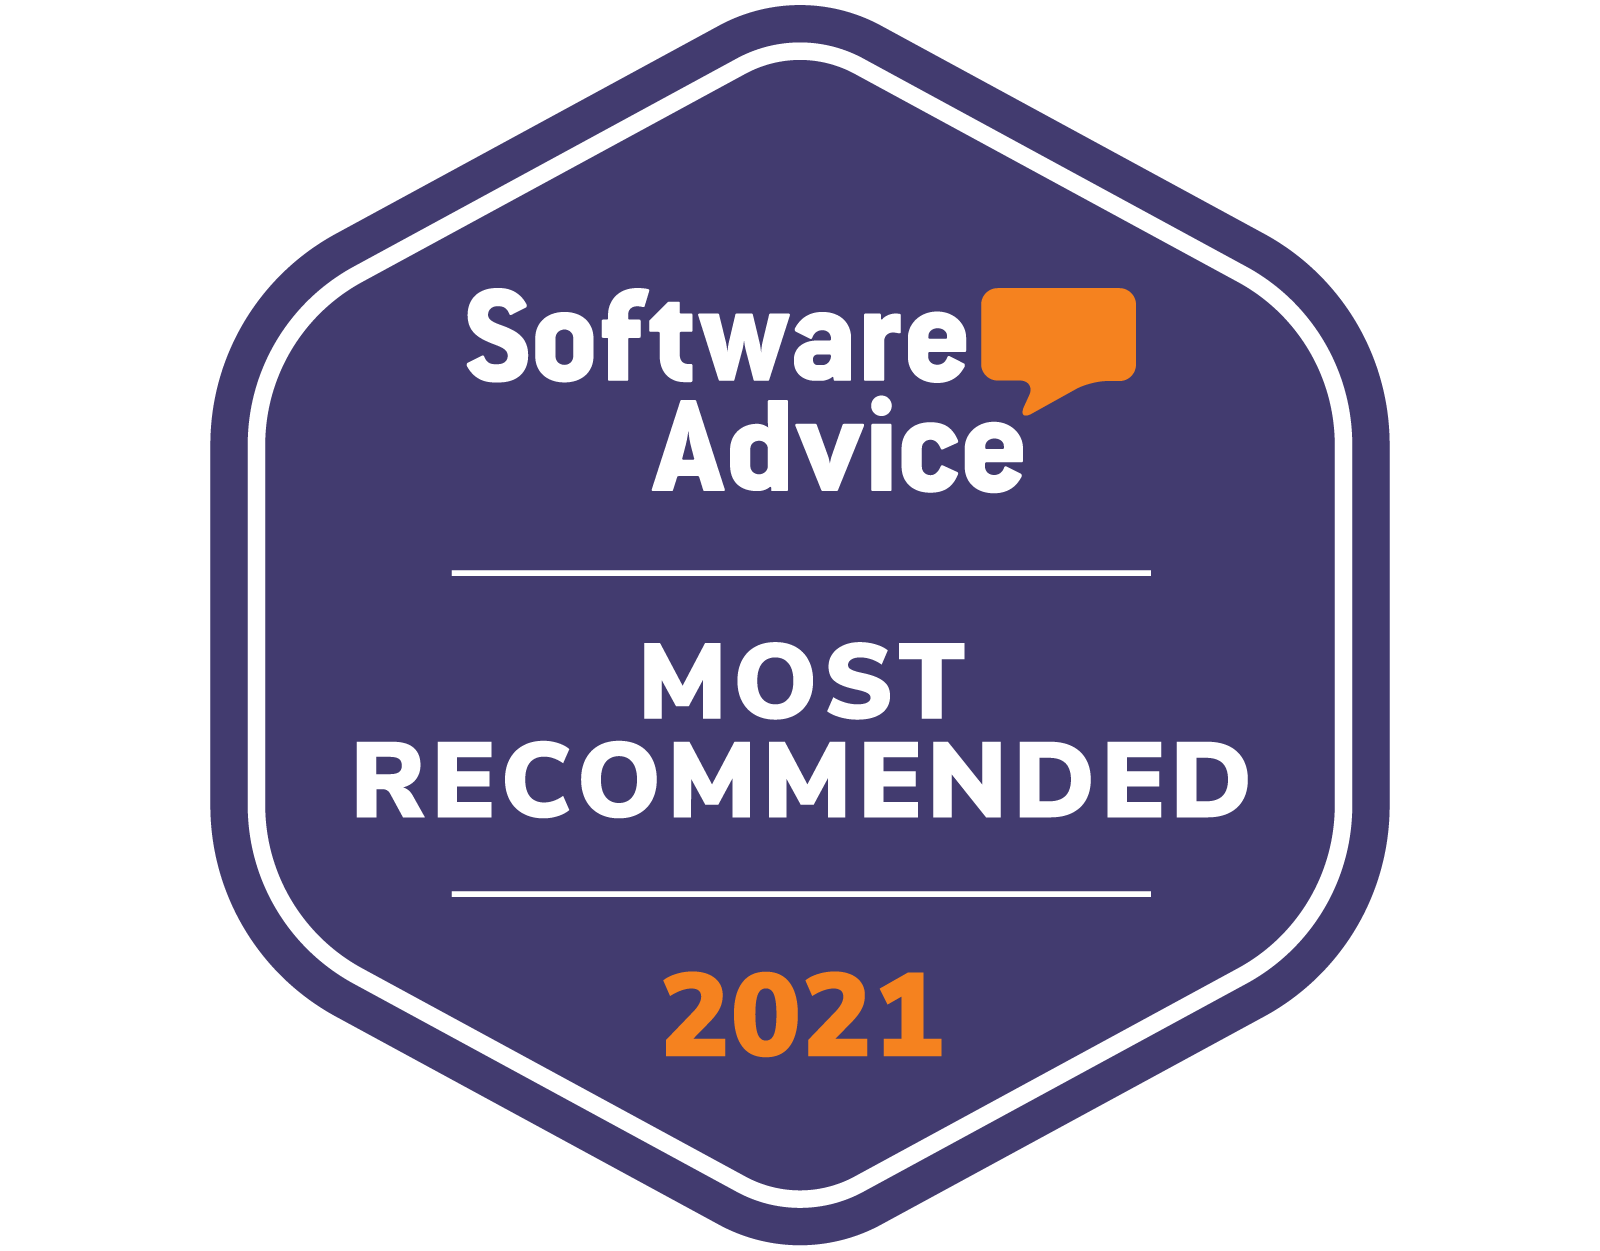 Software Advice Recommended for Patient Portal Software Mar-21